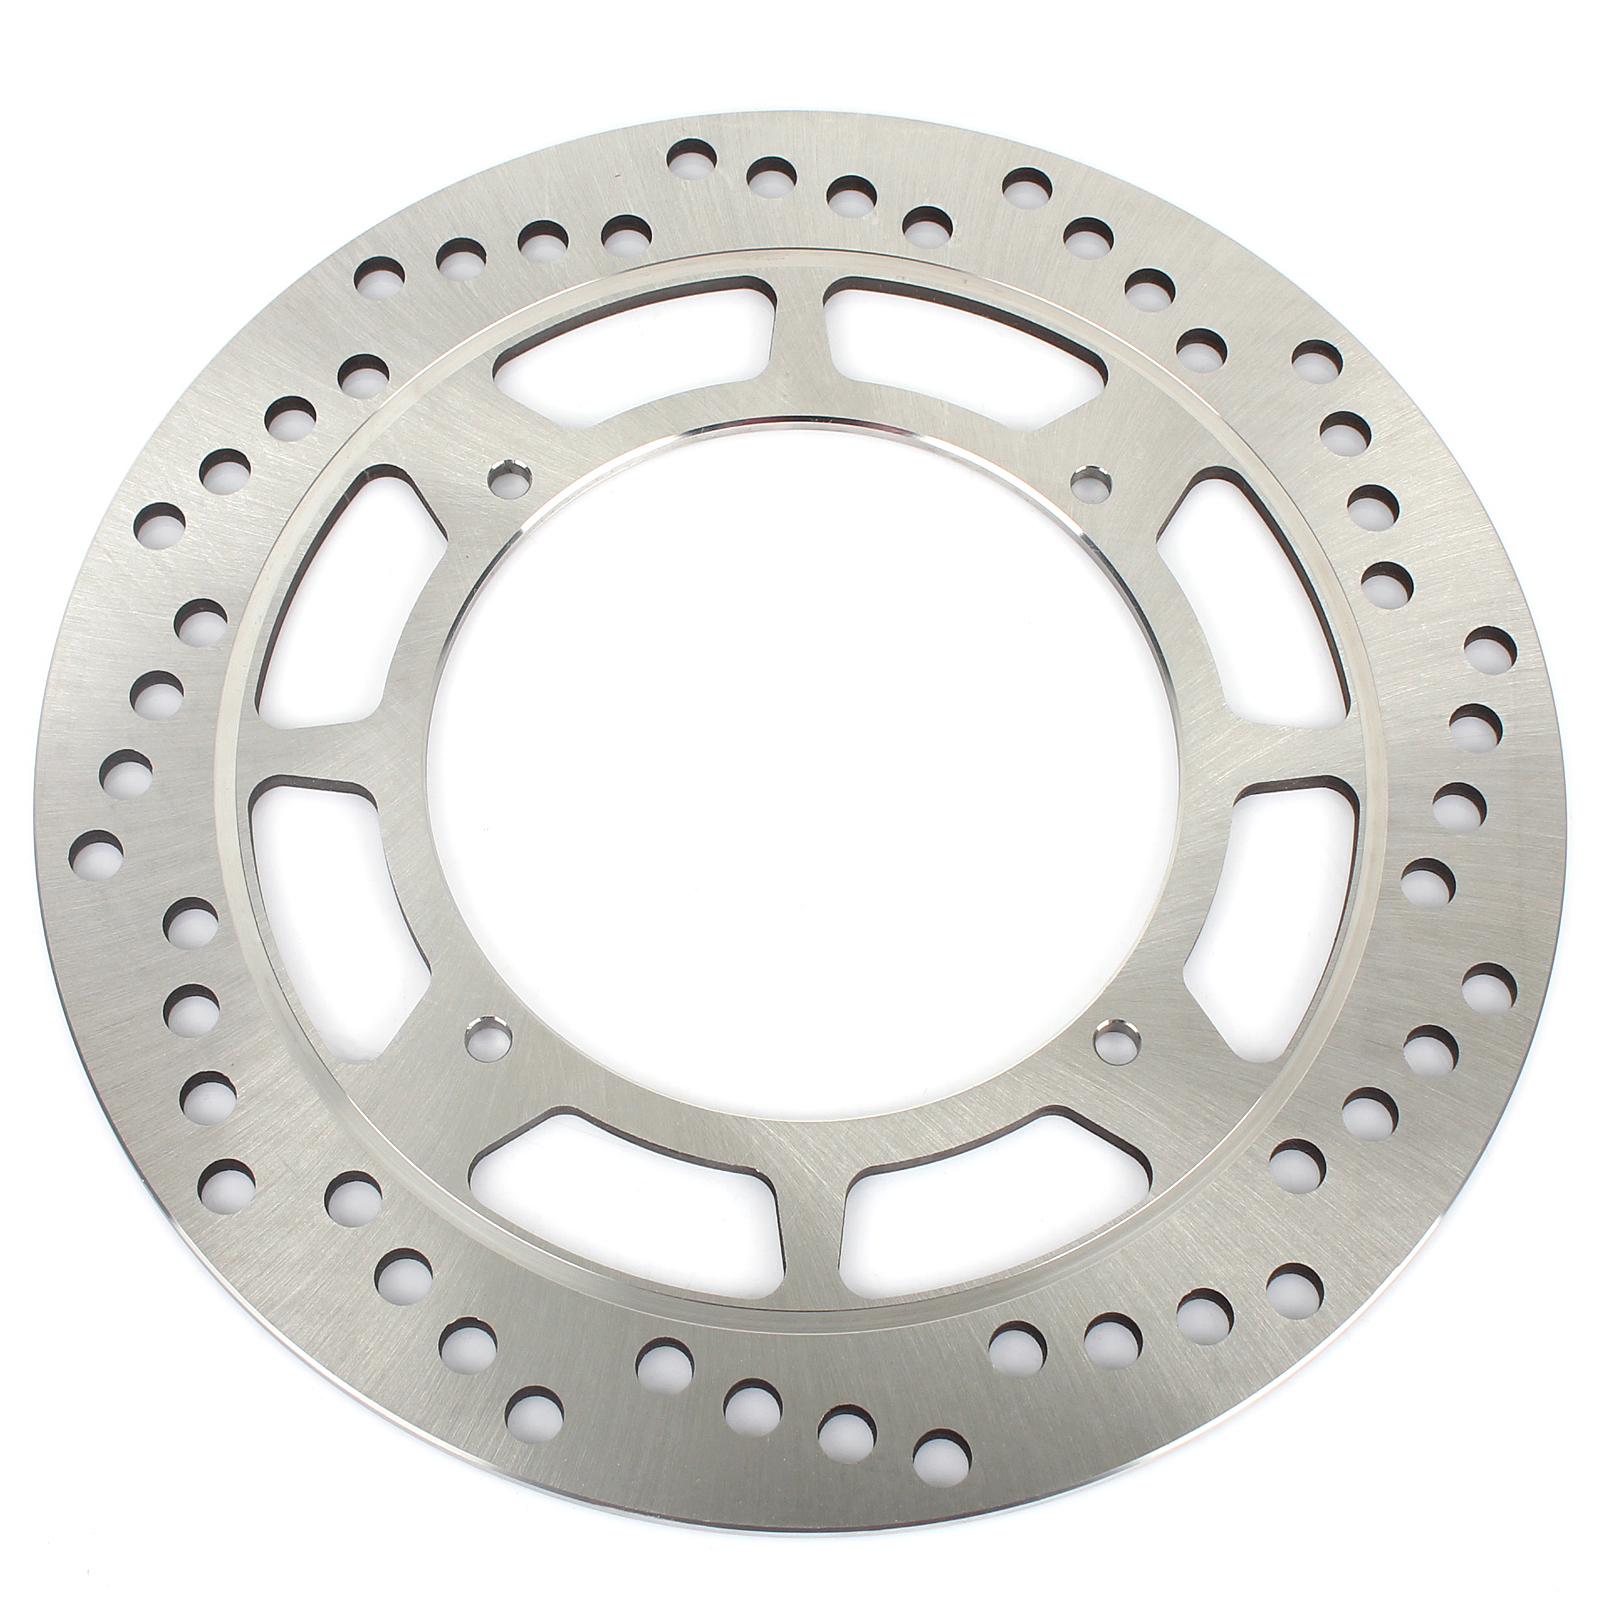 BIKINGBOY Front Brake Disc Disk Rotor For <font><b>Honda</b></font> <font><b>XR</b></font> 250 <font><b>350</b></font> 400 440 500 600 650 R CR 125 250 500 R XLR 250 R CRF 230 L F XL 250 R image